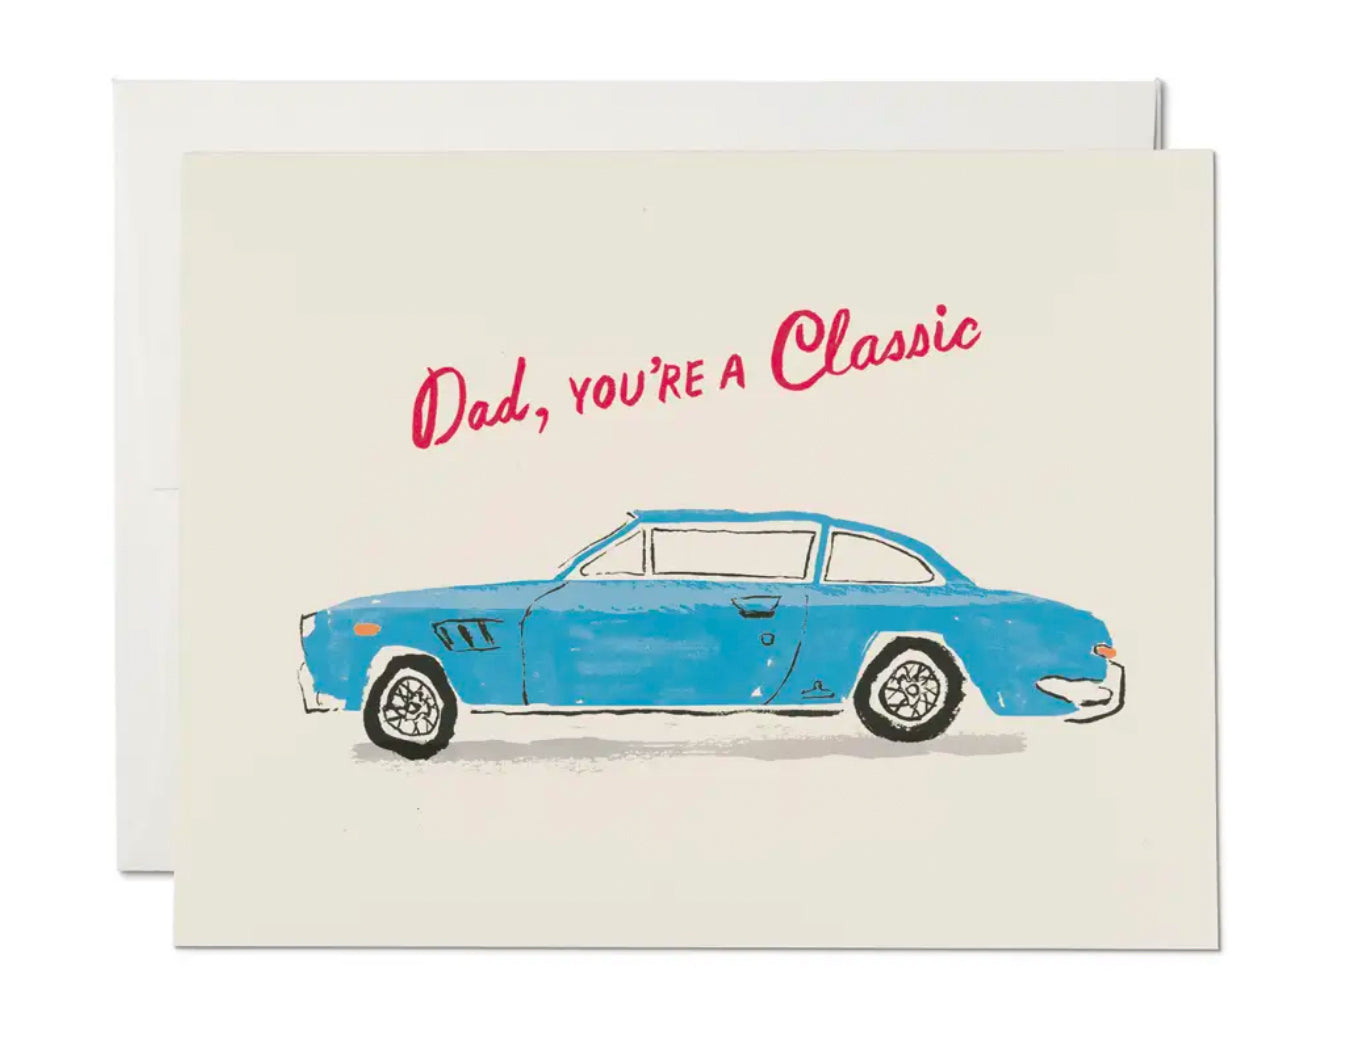 dad you're a classic in red writing and a classic blue car